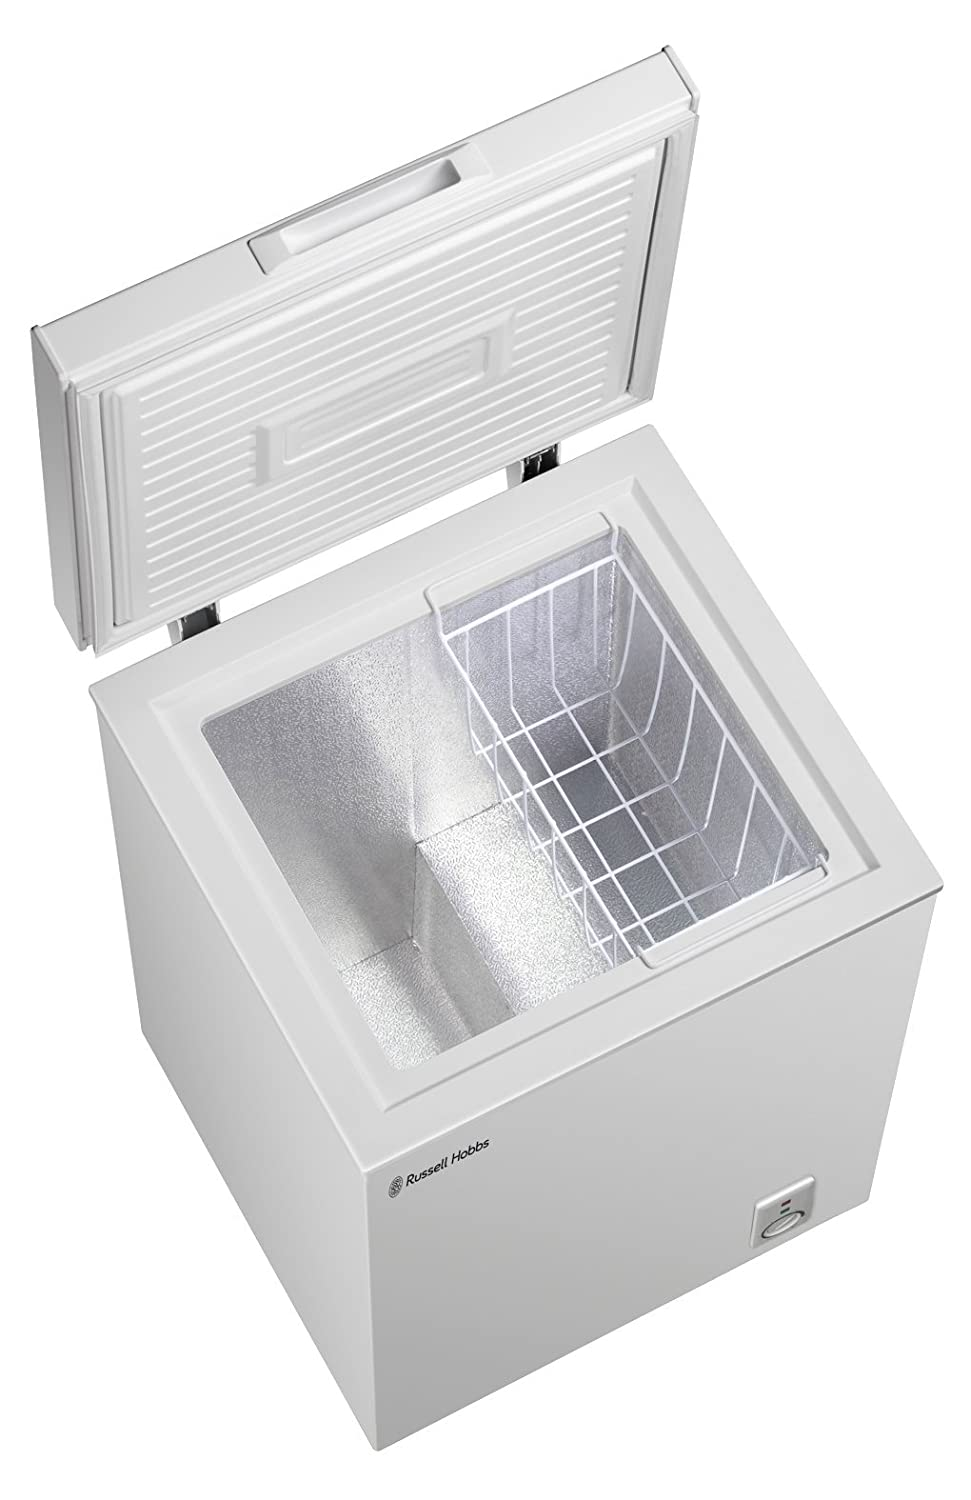 Russell Hobbs RHCF103-MD Chest Freezer, White [Energy Class A+]